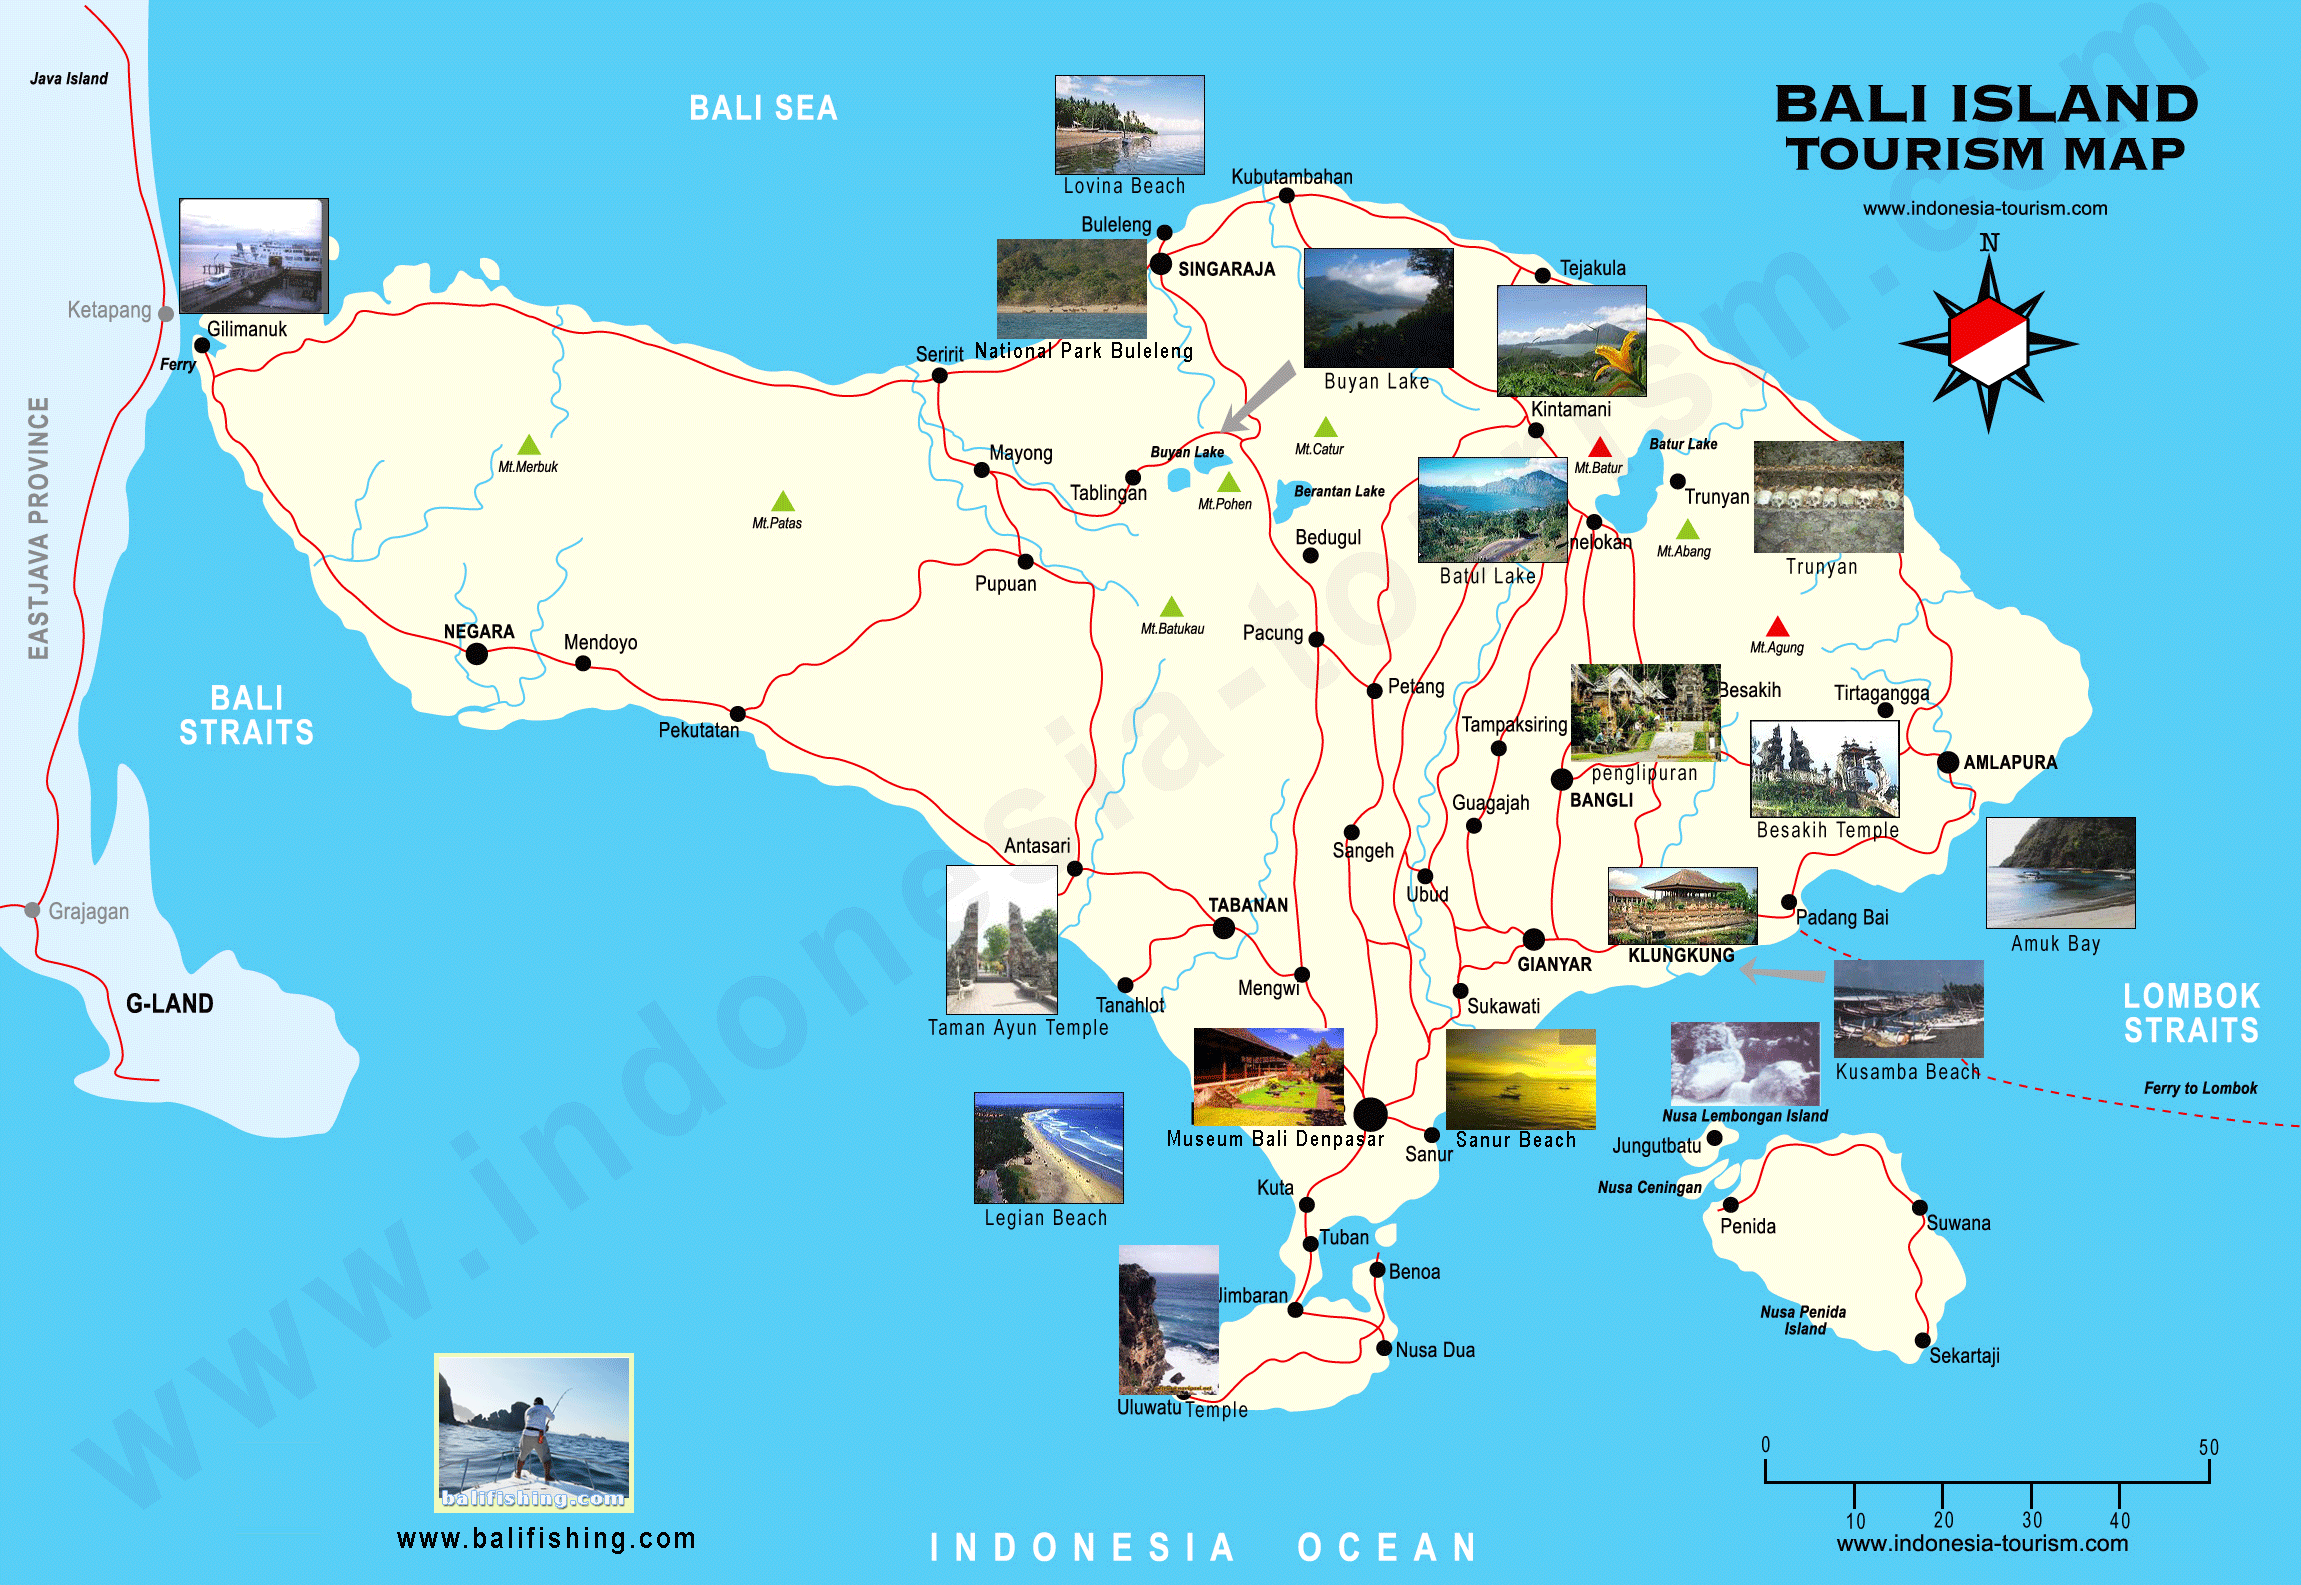 Bali map high inside your mind published september 13 2011 at 2301 1585 in bali gumiabroncs